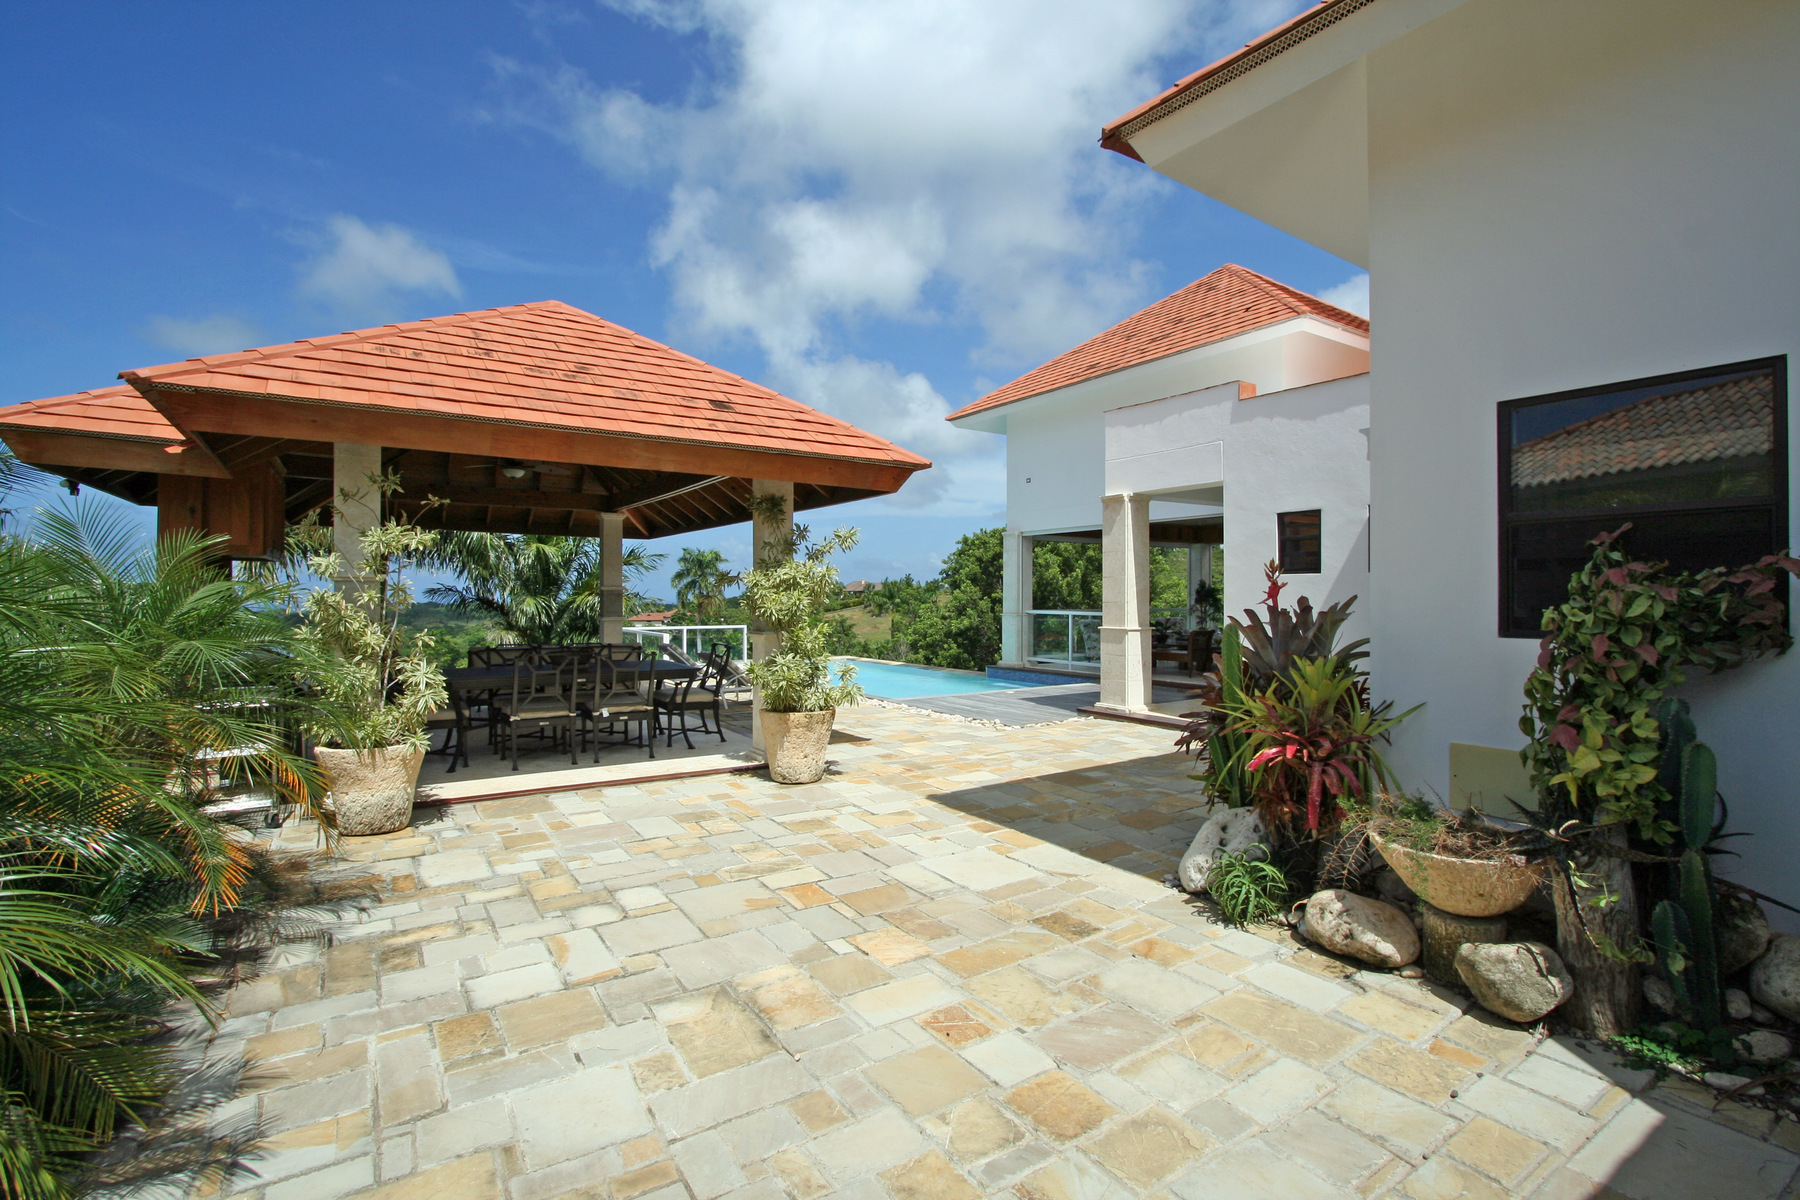 Single Family Home for Sale at Panorama Village No. 4 4 Panorama Village Sosua, Puerto Plata 57000 Dominican Republic